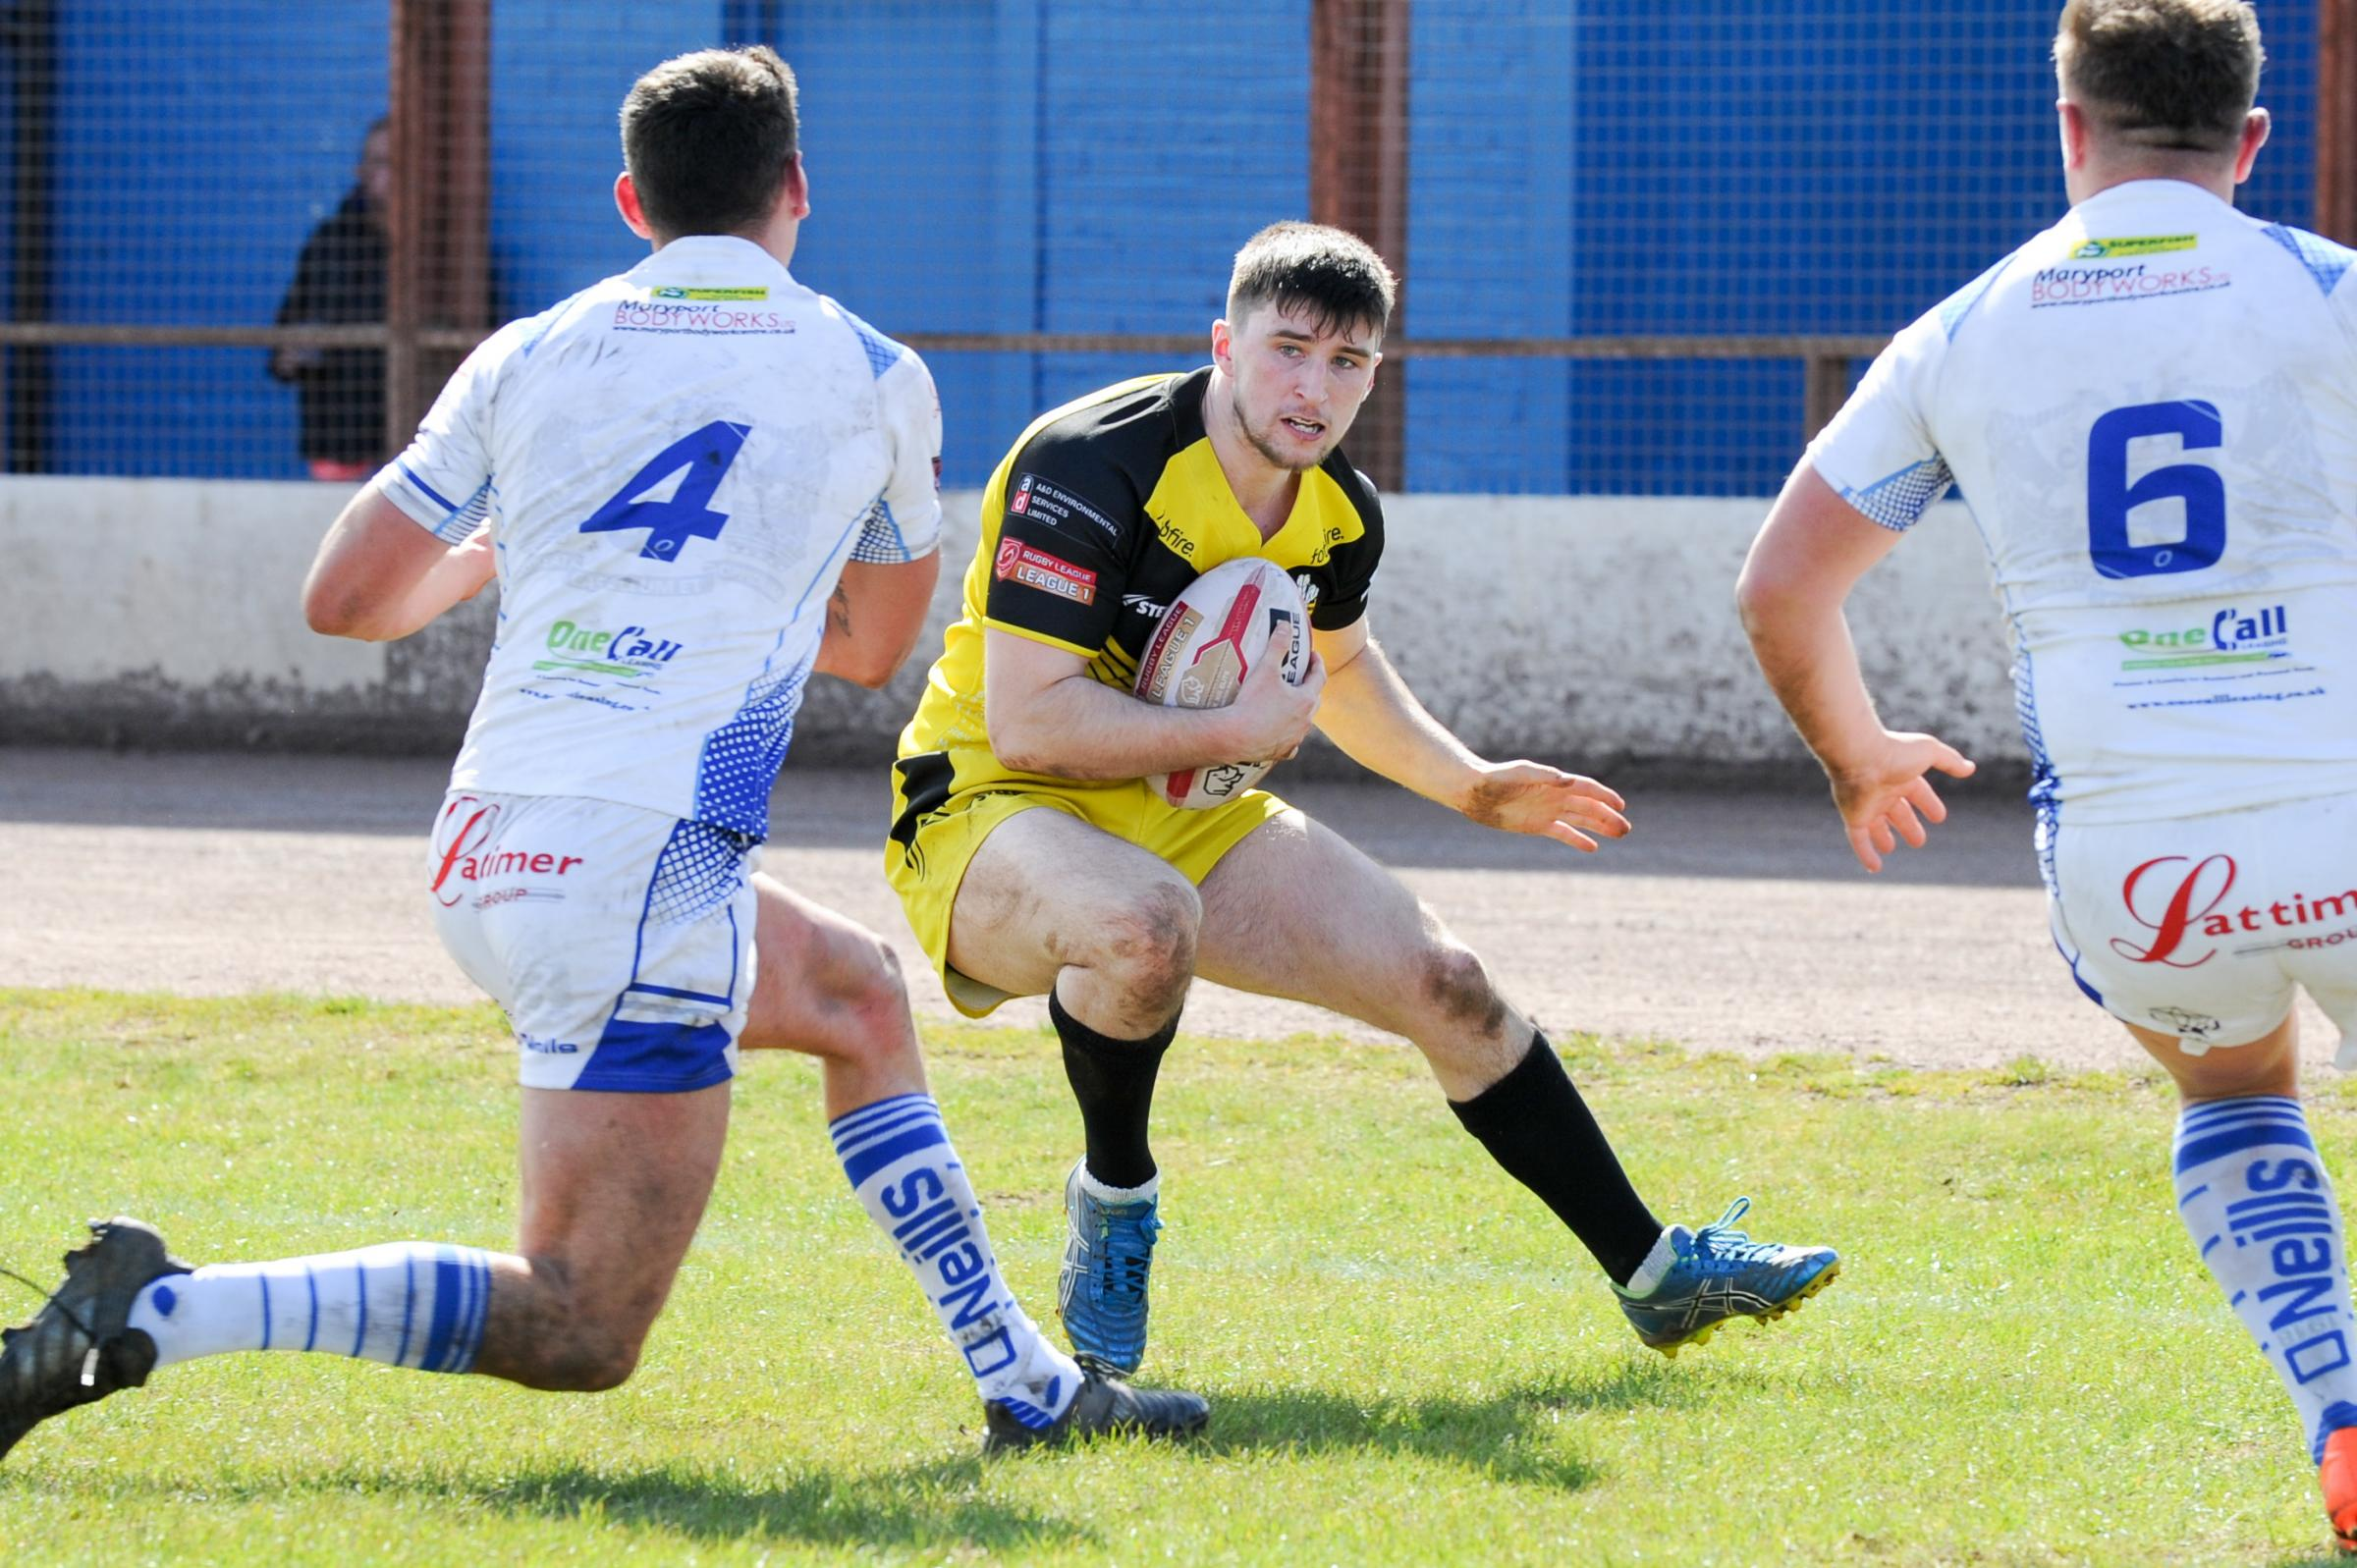 Jack Houghton in action for North Wales Crusaders a Workington Photo: Richard Long